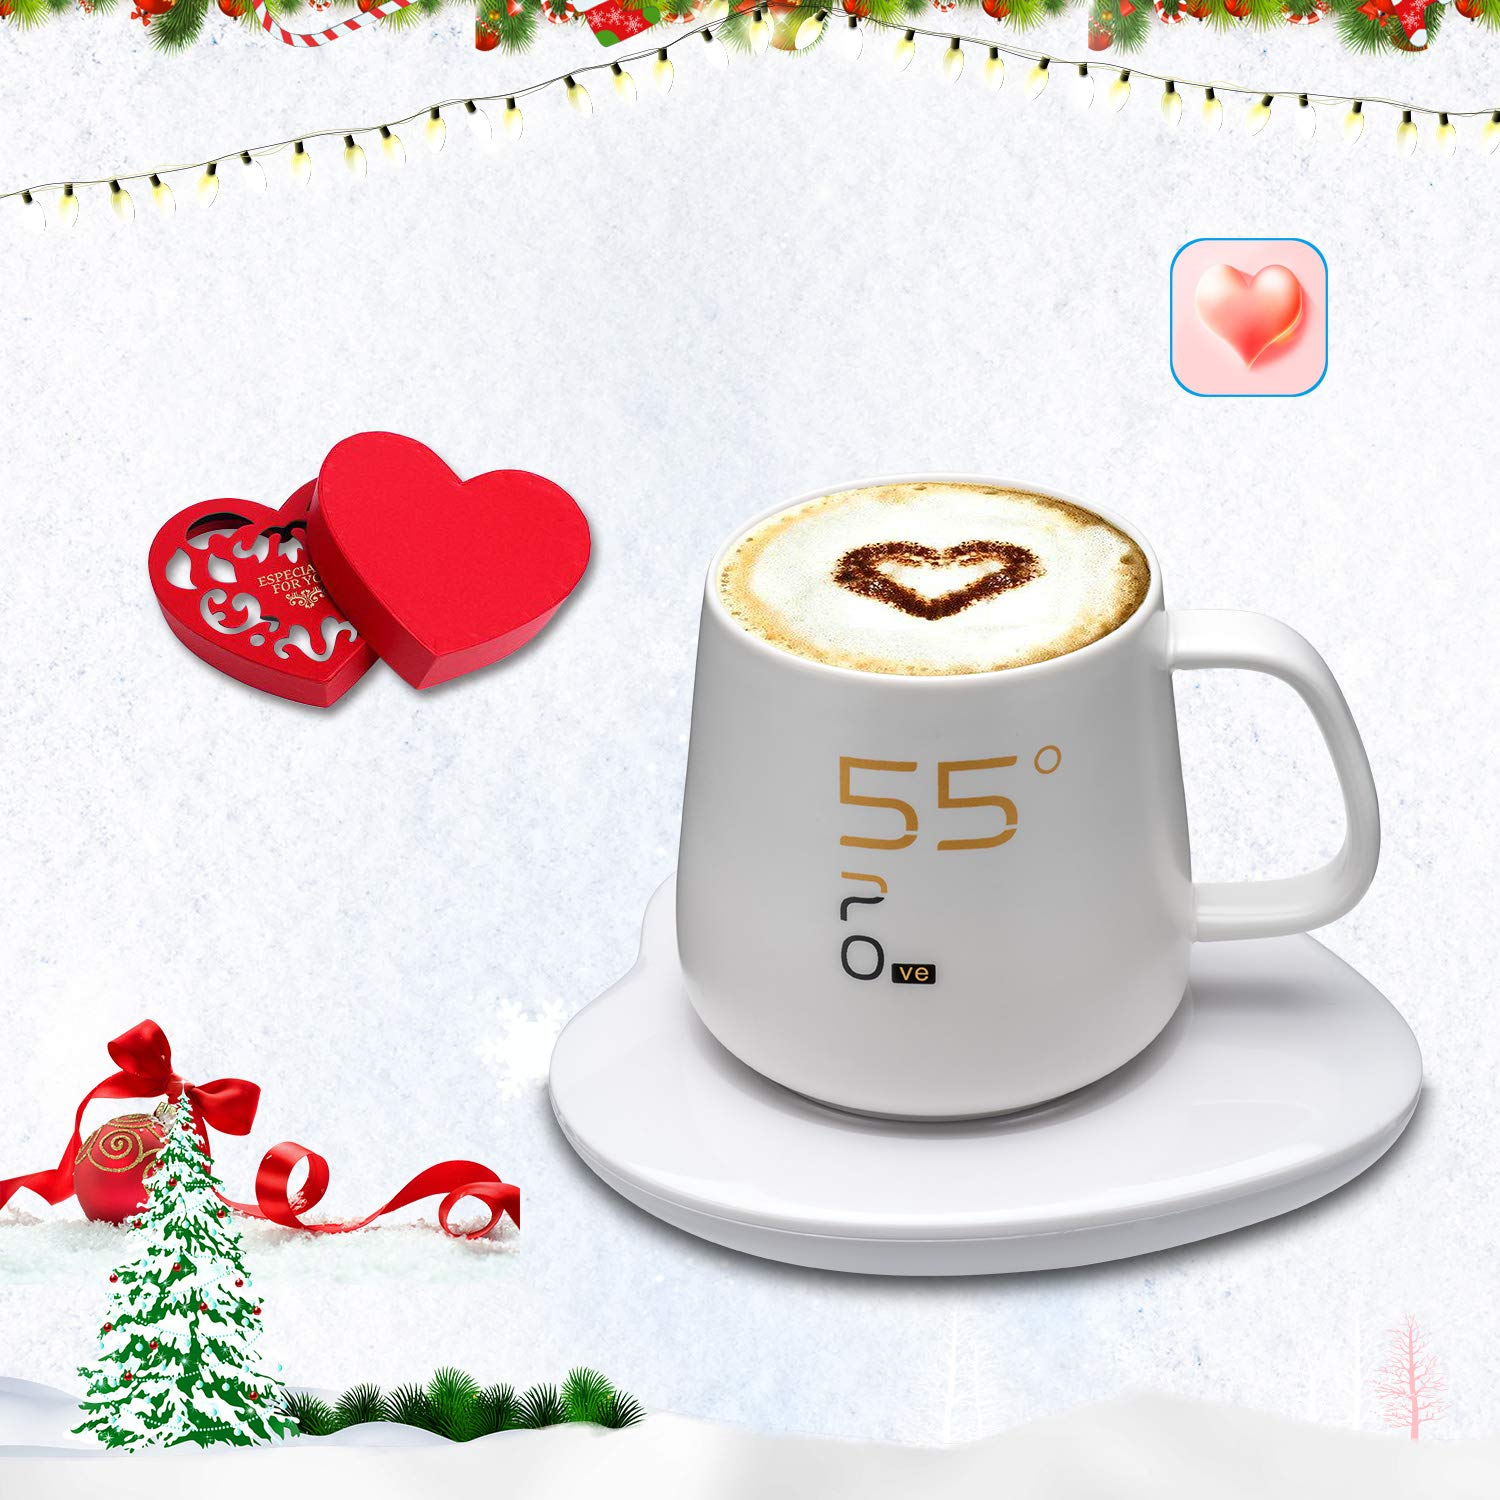 Coffee Cup Mug Warmer, Electric Coffee Cup Beverage Mug Warmer(Milk, Coffee, Drink, Tea)- Lovers'Christmas& Wintter Present OneKing